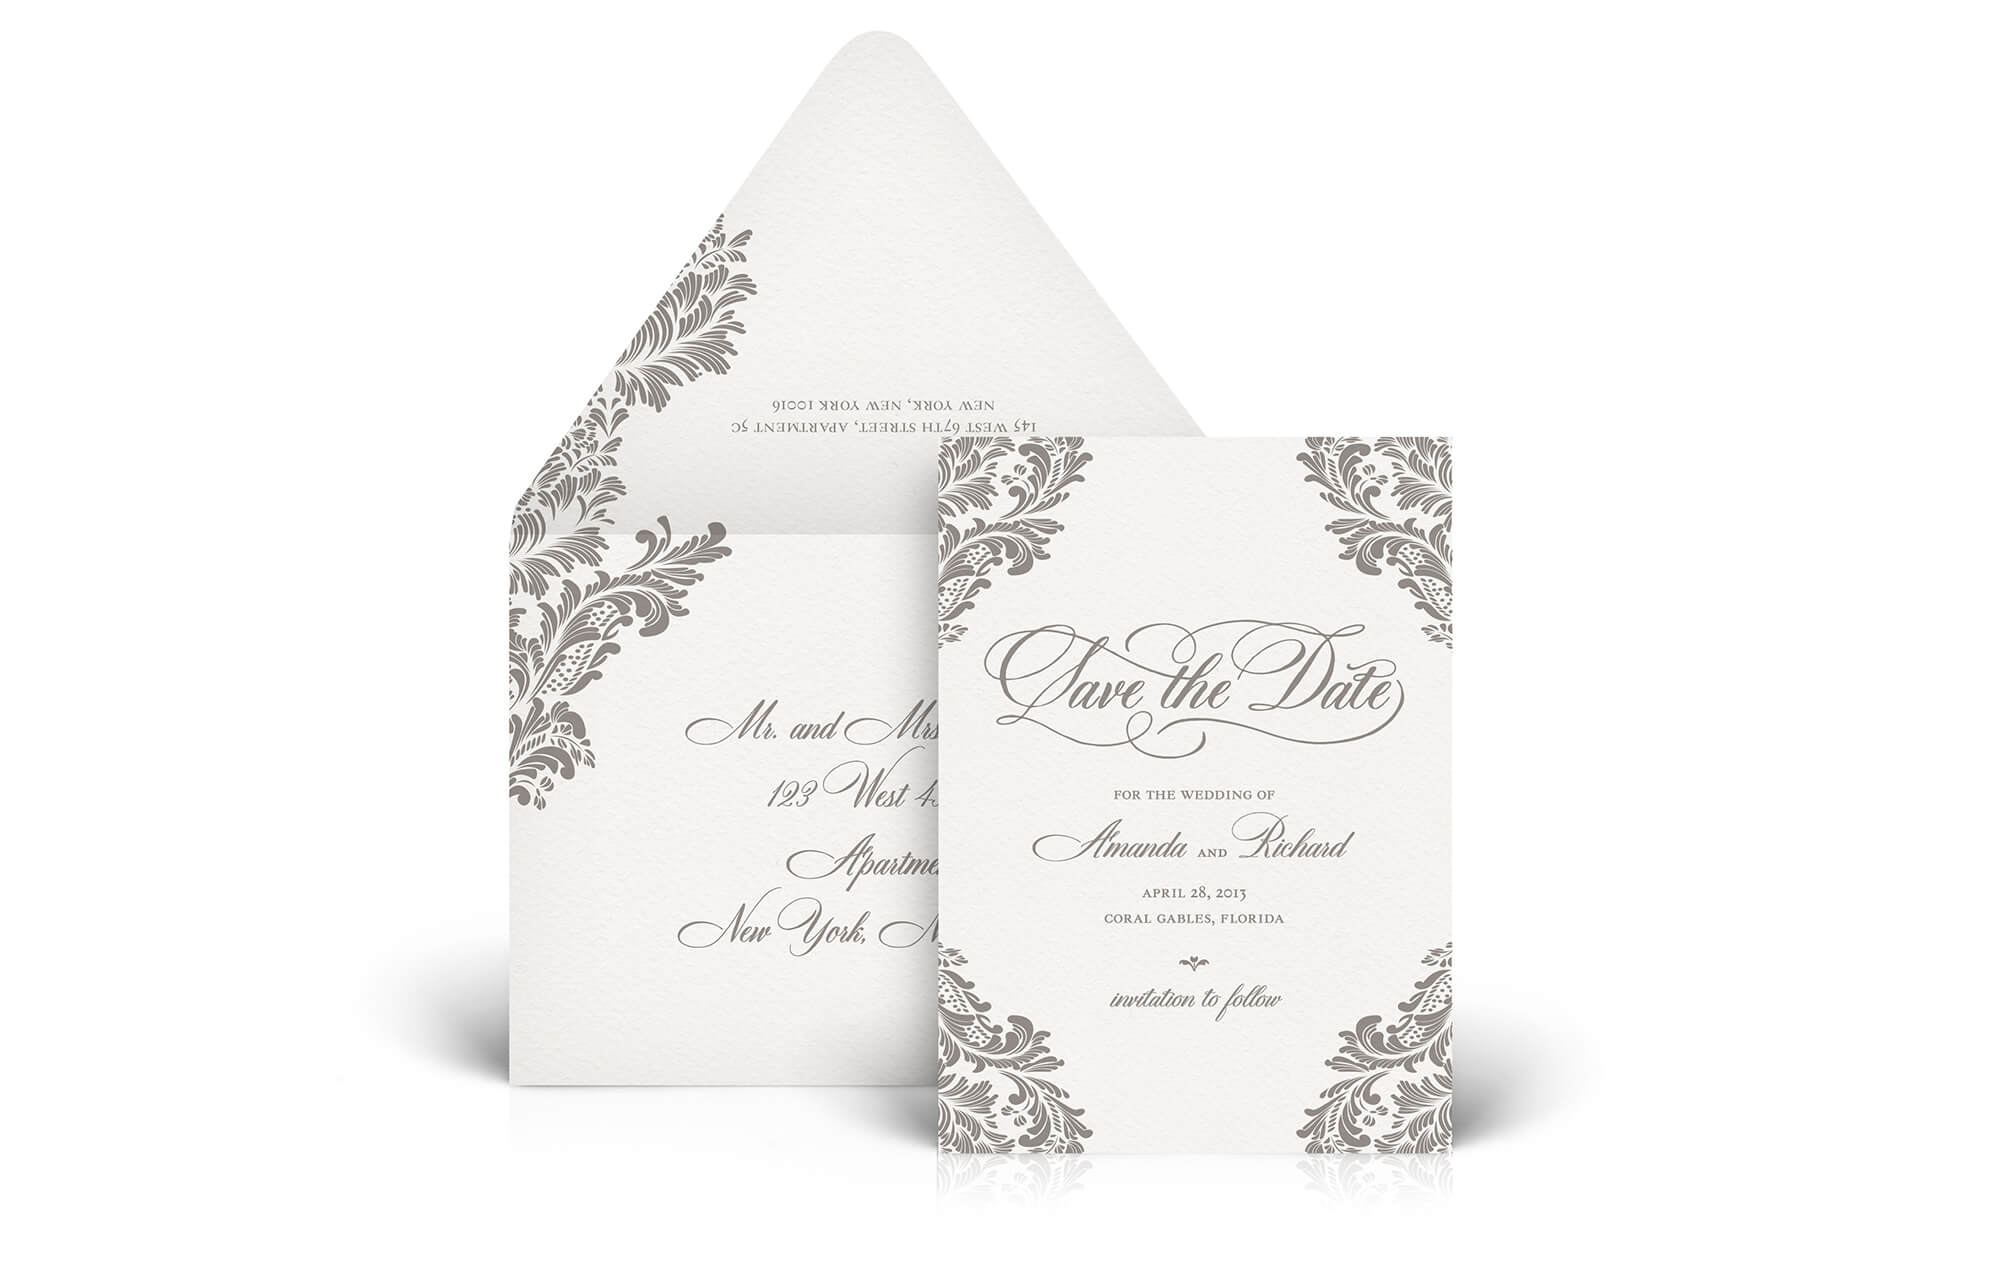 Classic ornate letterpress save the date